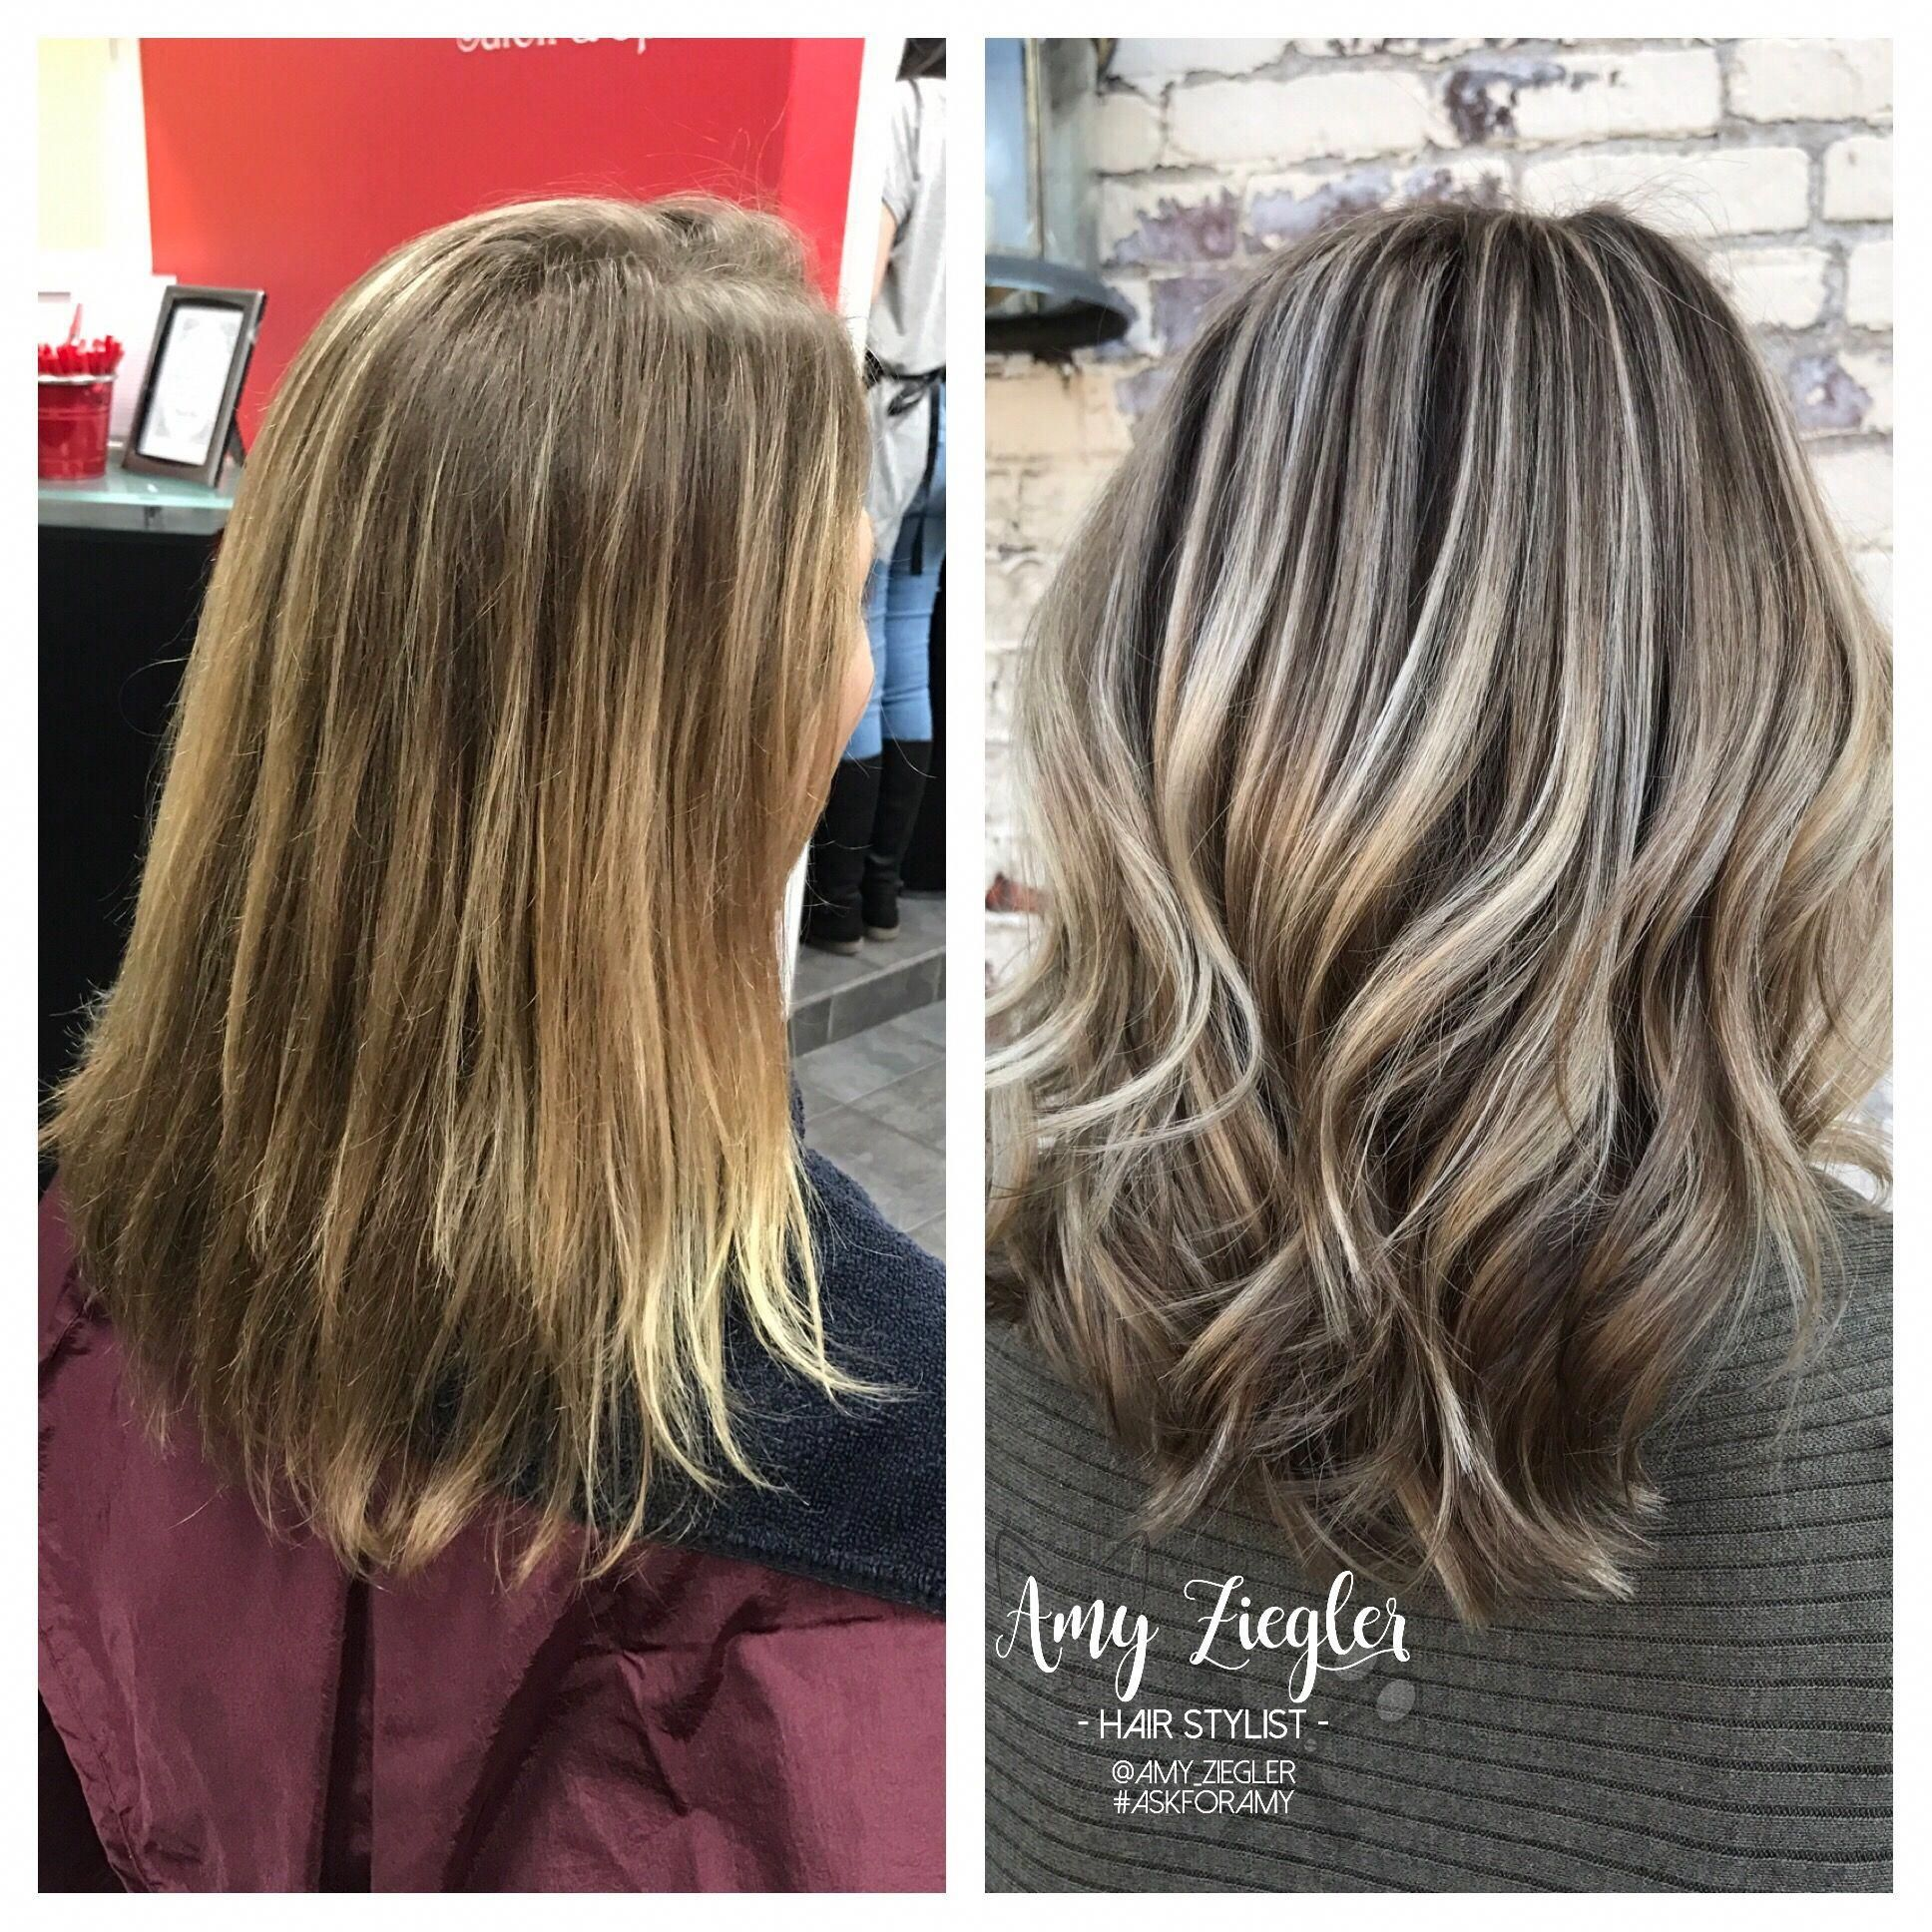 Ash Blonde Highlight Lowlight Transformation By Askforamy Gorgeousmakeupforblondes Ash Blonde Highlights Blonde Highlights Blonde Hair Color